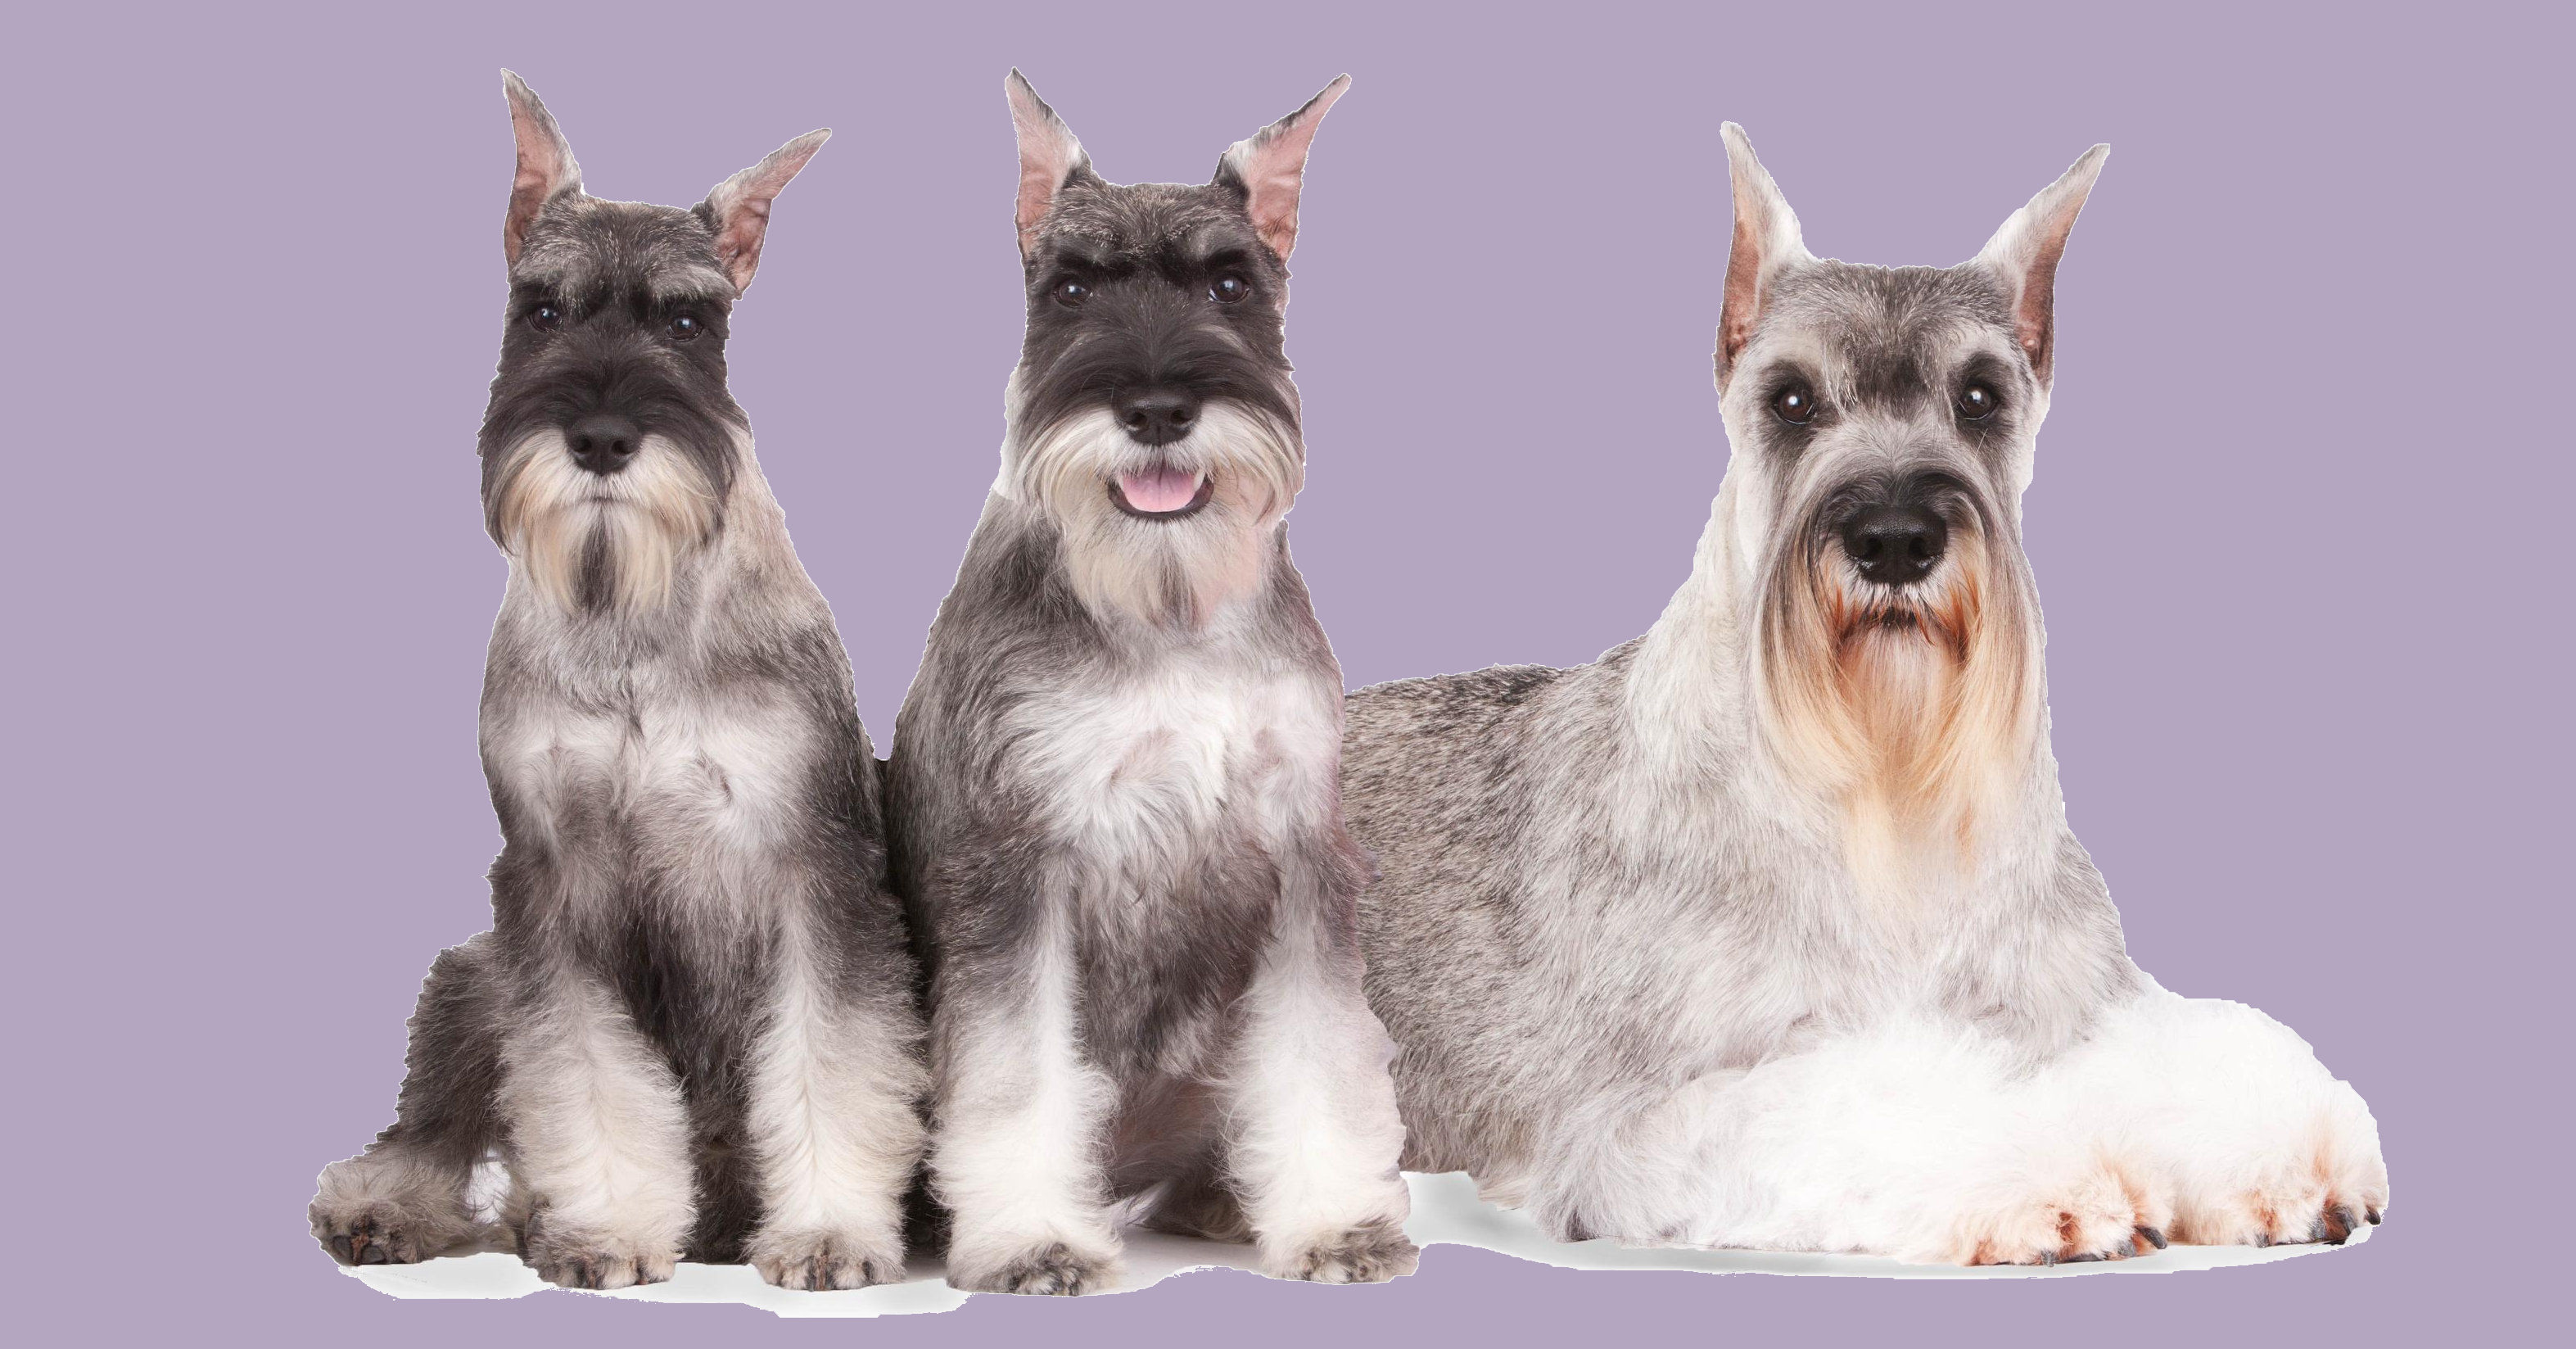 Shana Schnauzers Bred For Health Temperament And Structure